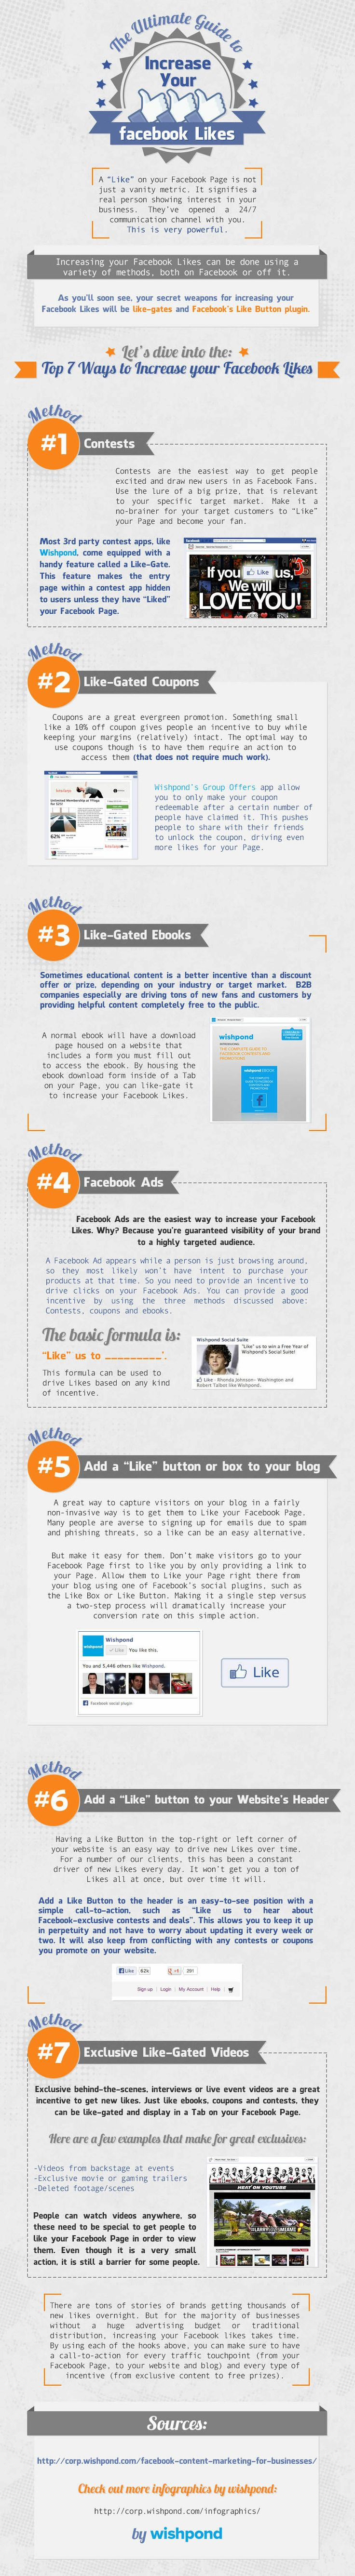 687 best infographic images on pinterest info graphics 7 ways to get more facebook likes infographic fandeluxe Choice Image